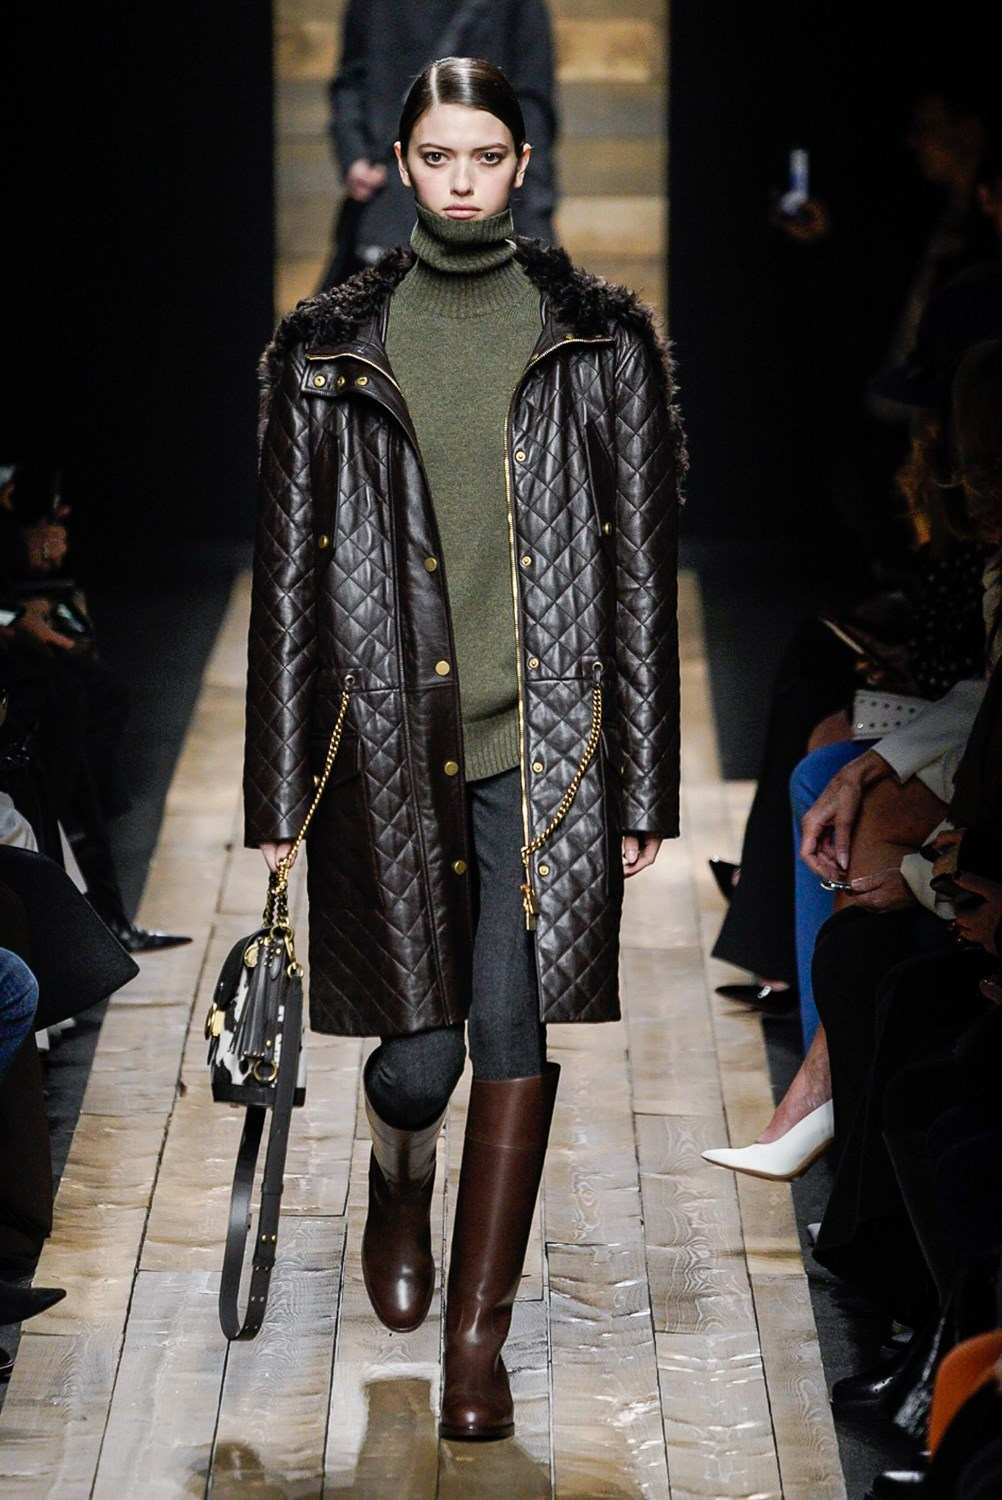 Michael Kors Collection Fall 2020 Fashion Show Photos